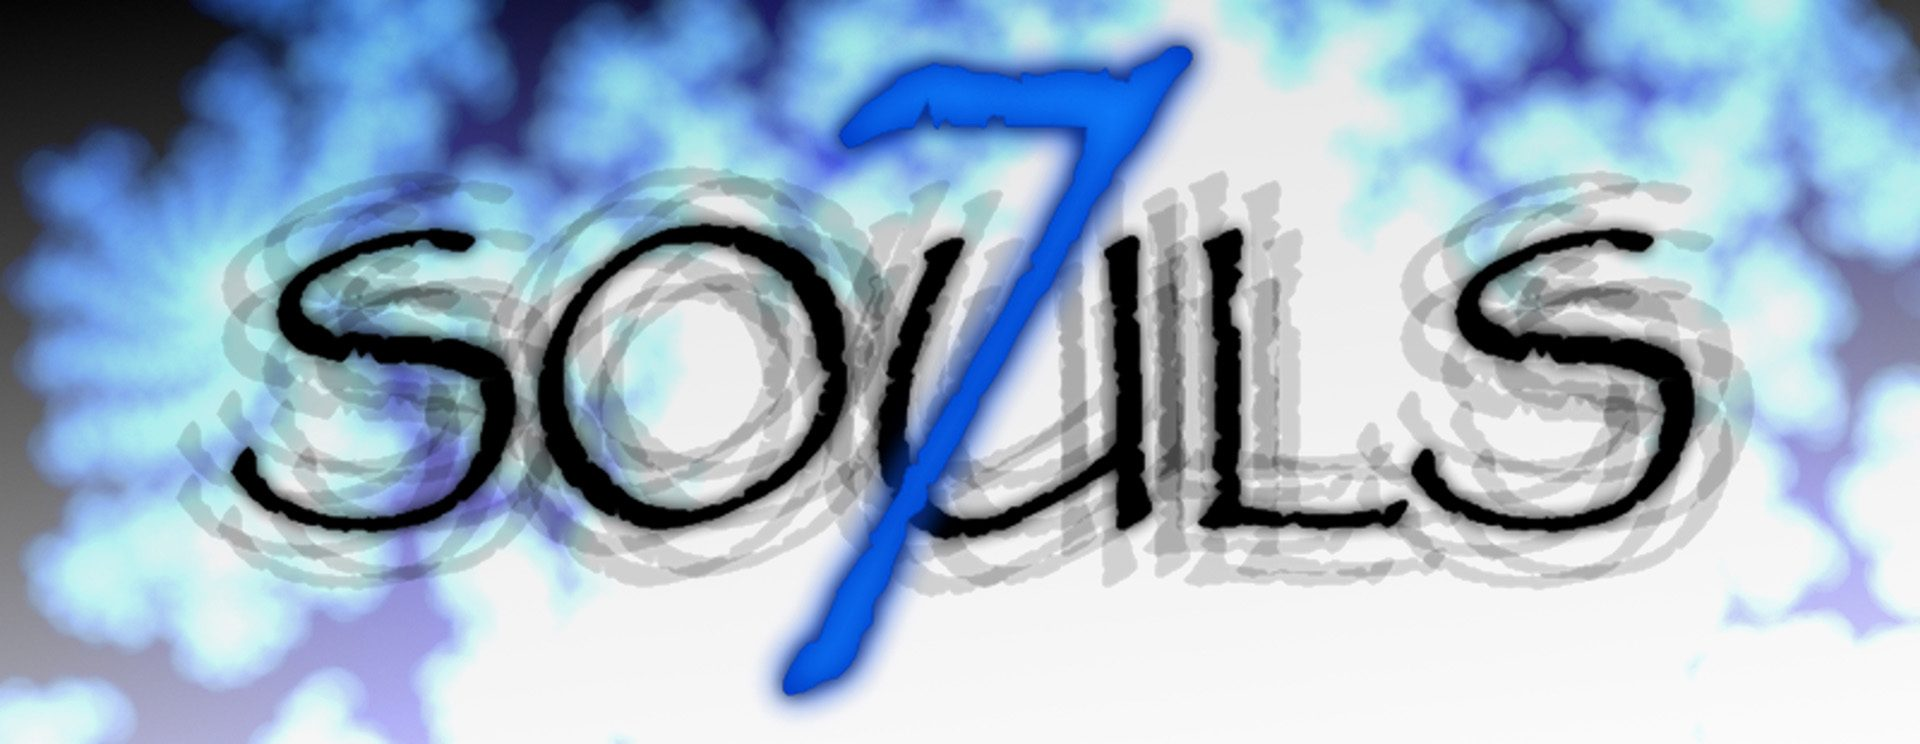 cropped-banner_small-2.jpg